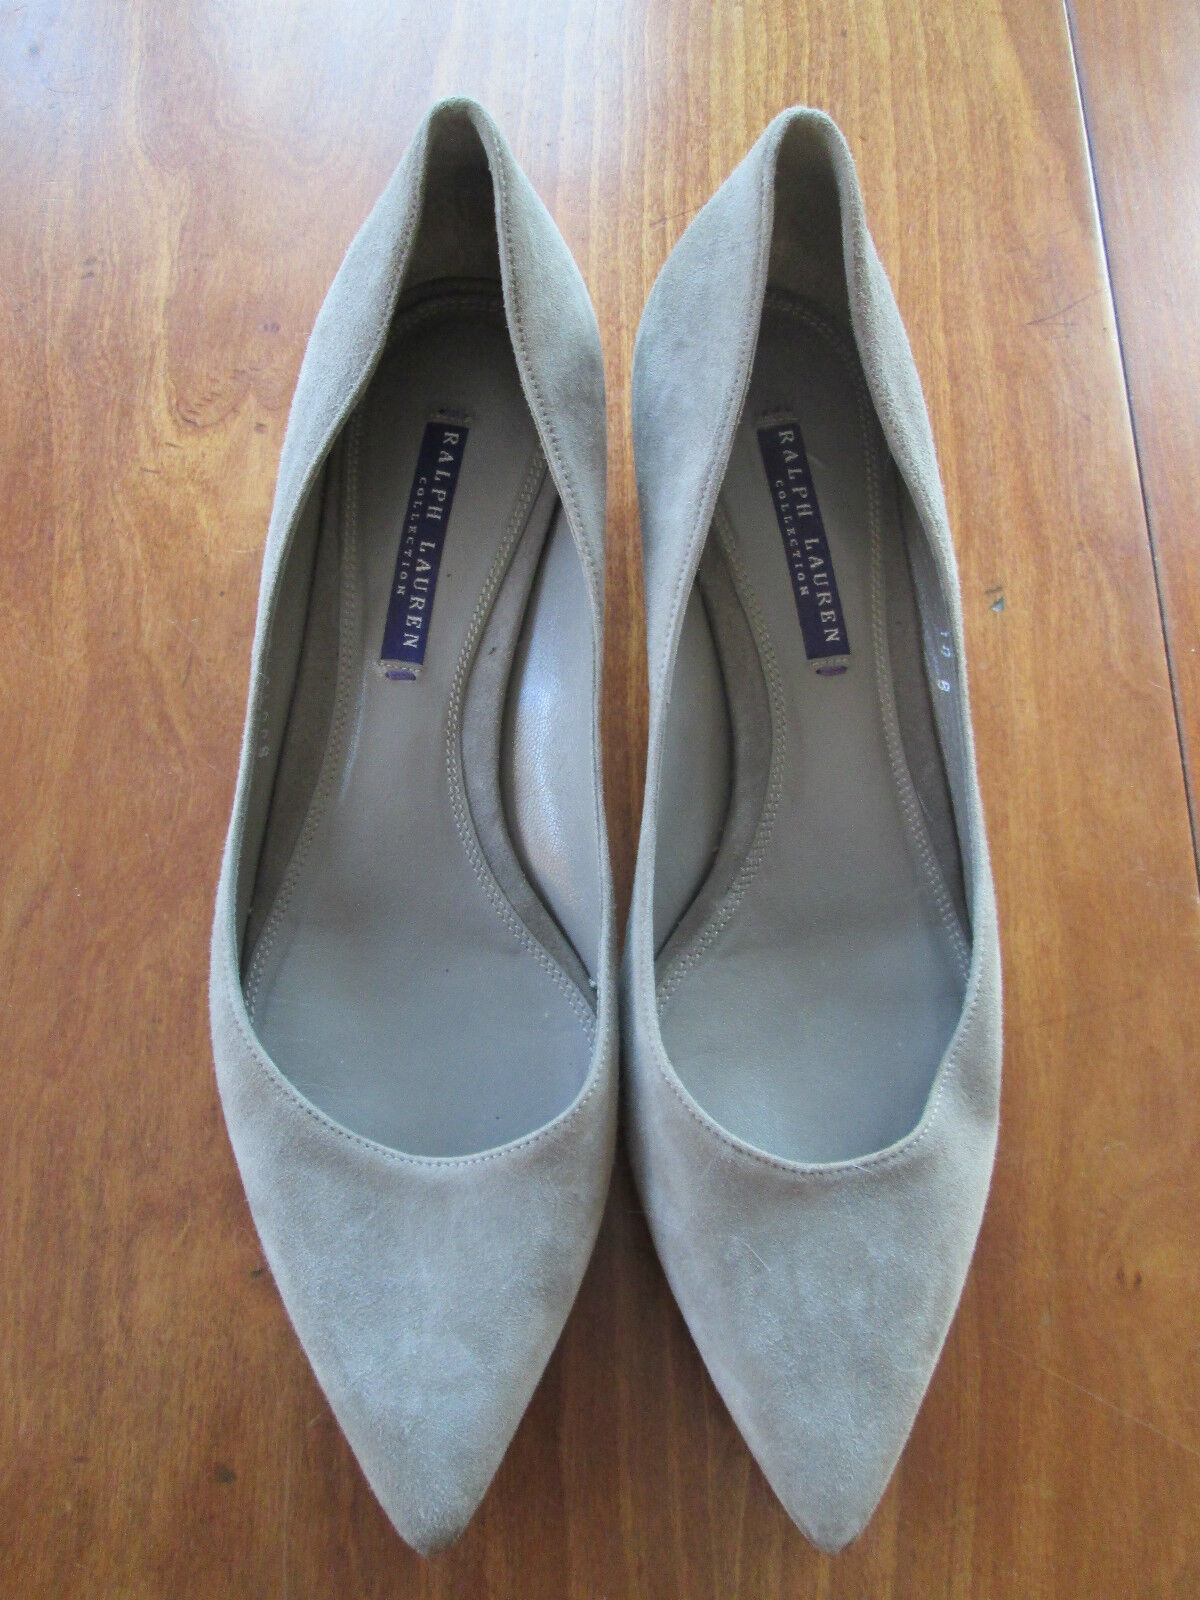 Ralph Lauren Collection Grey Suede Pumps Size 10B GUC Made in